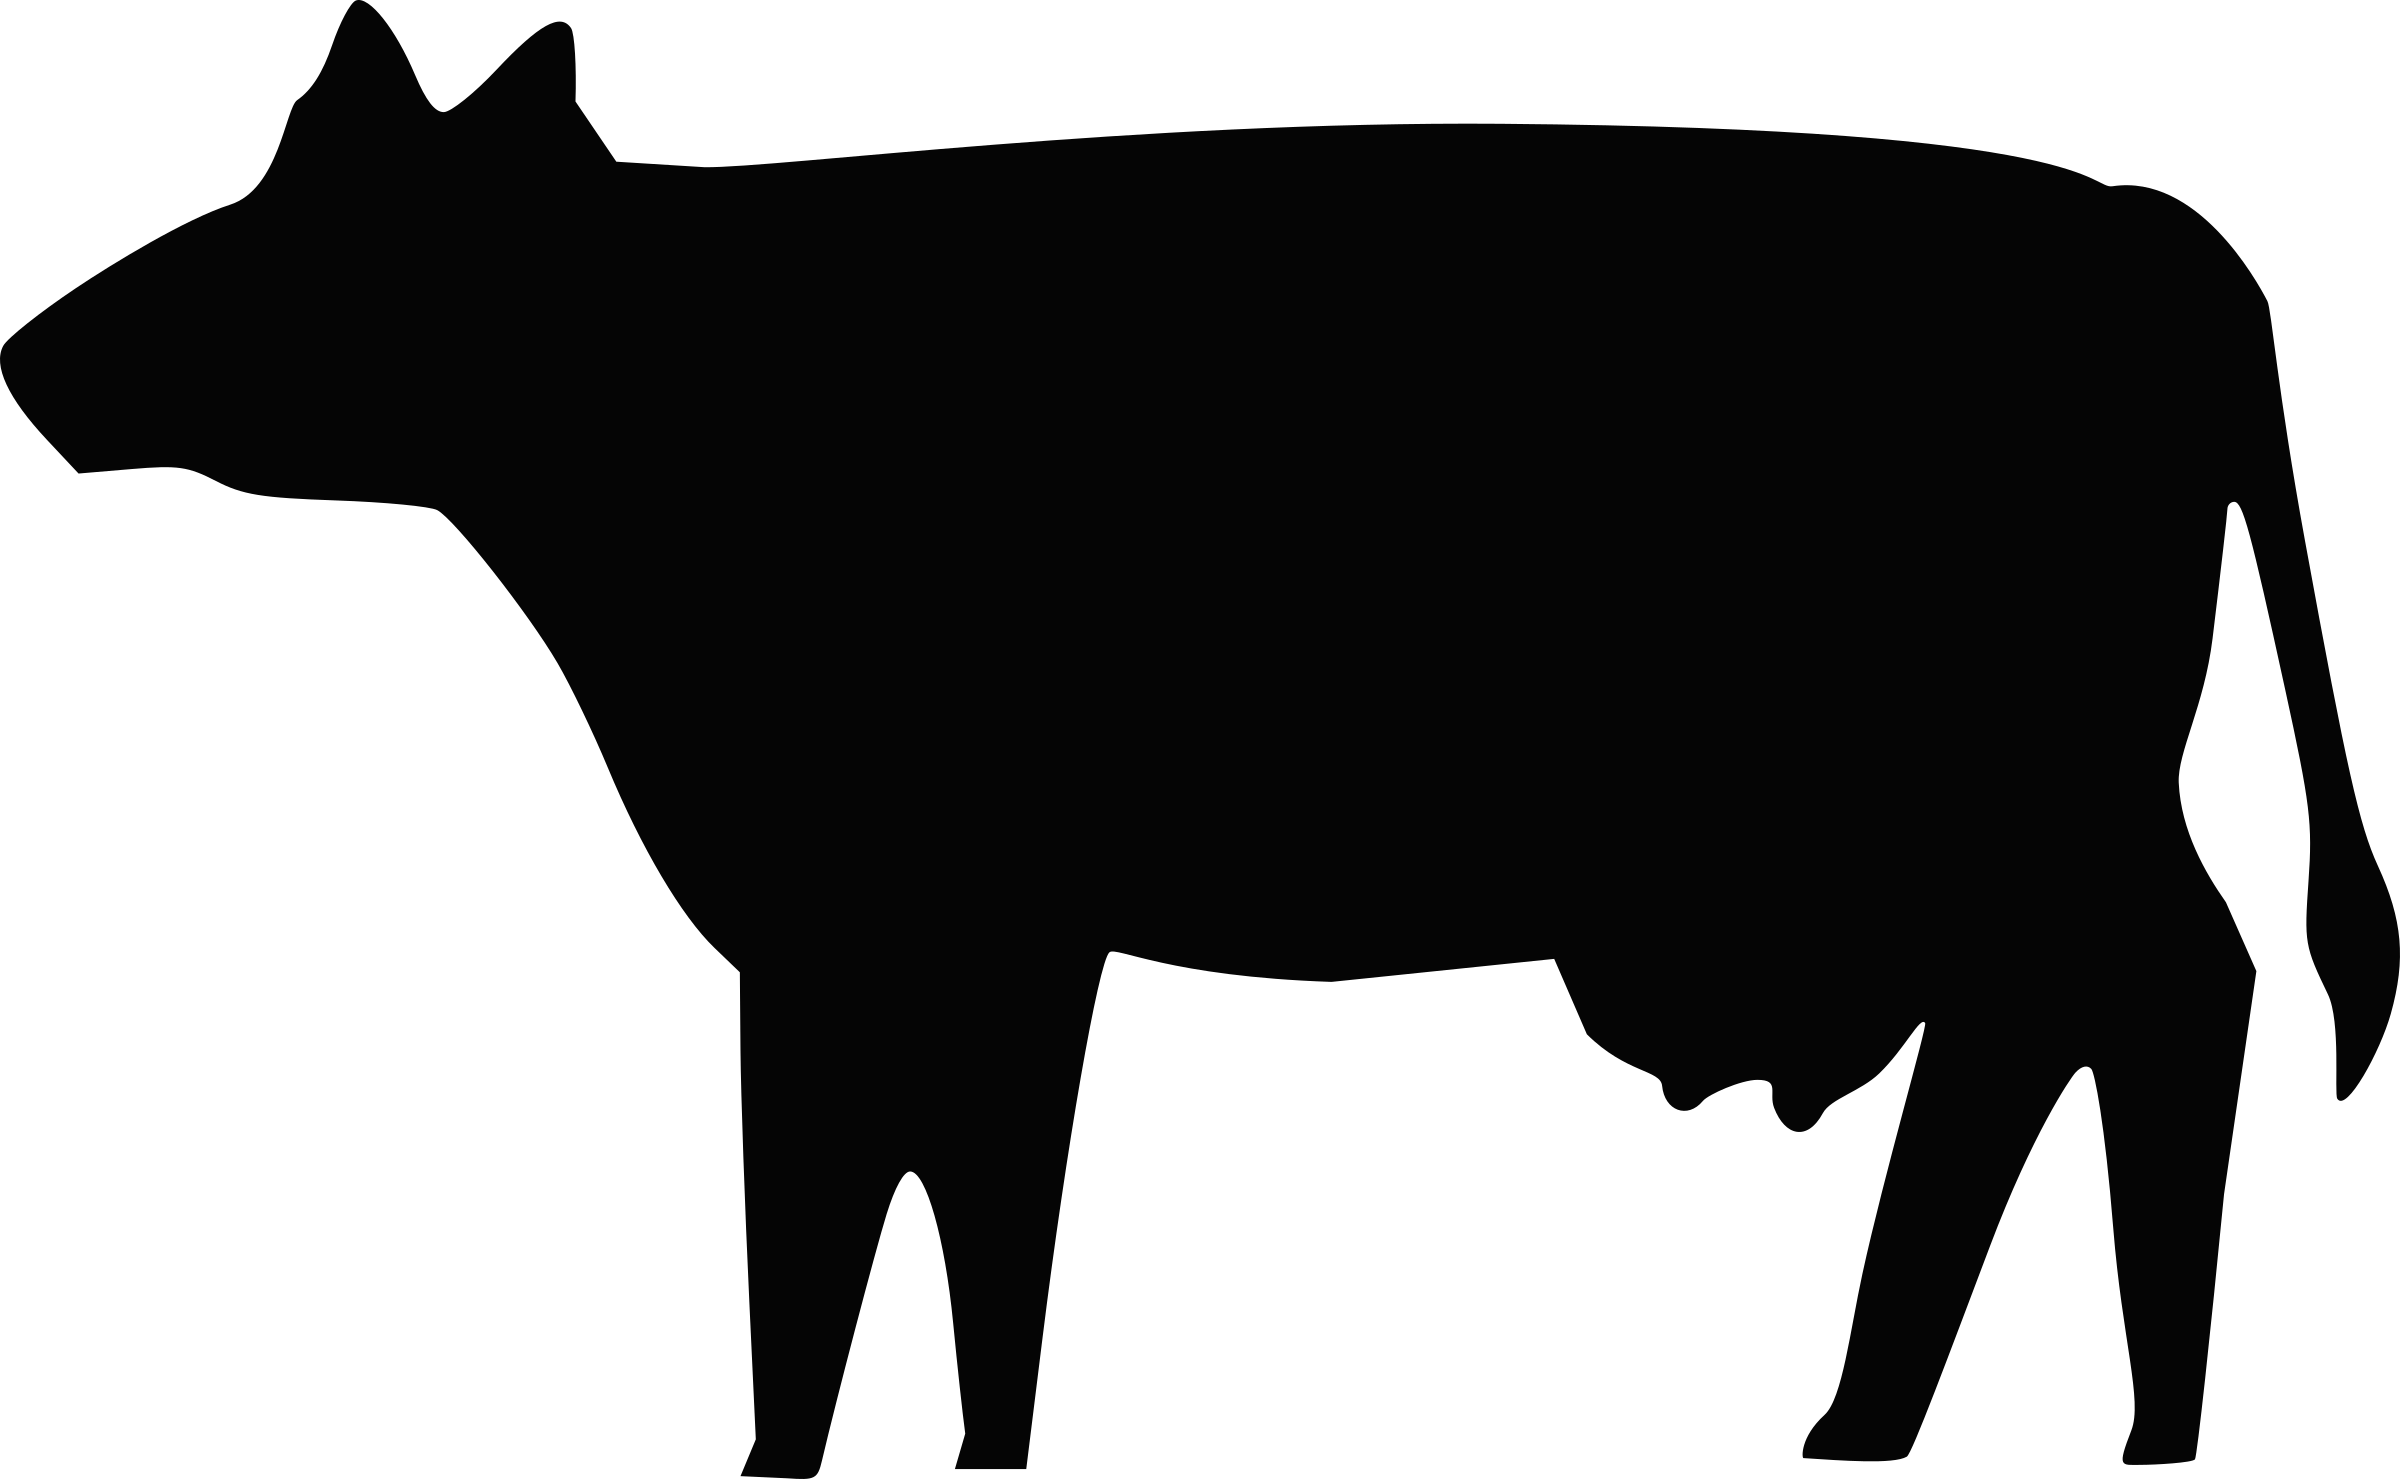 Cows clipart pig. Cow silhouette png at